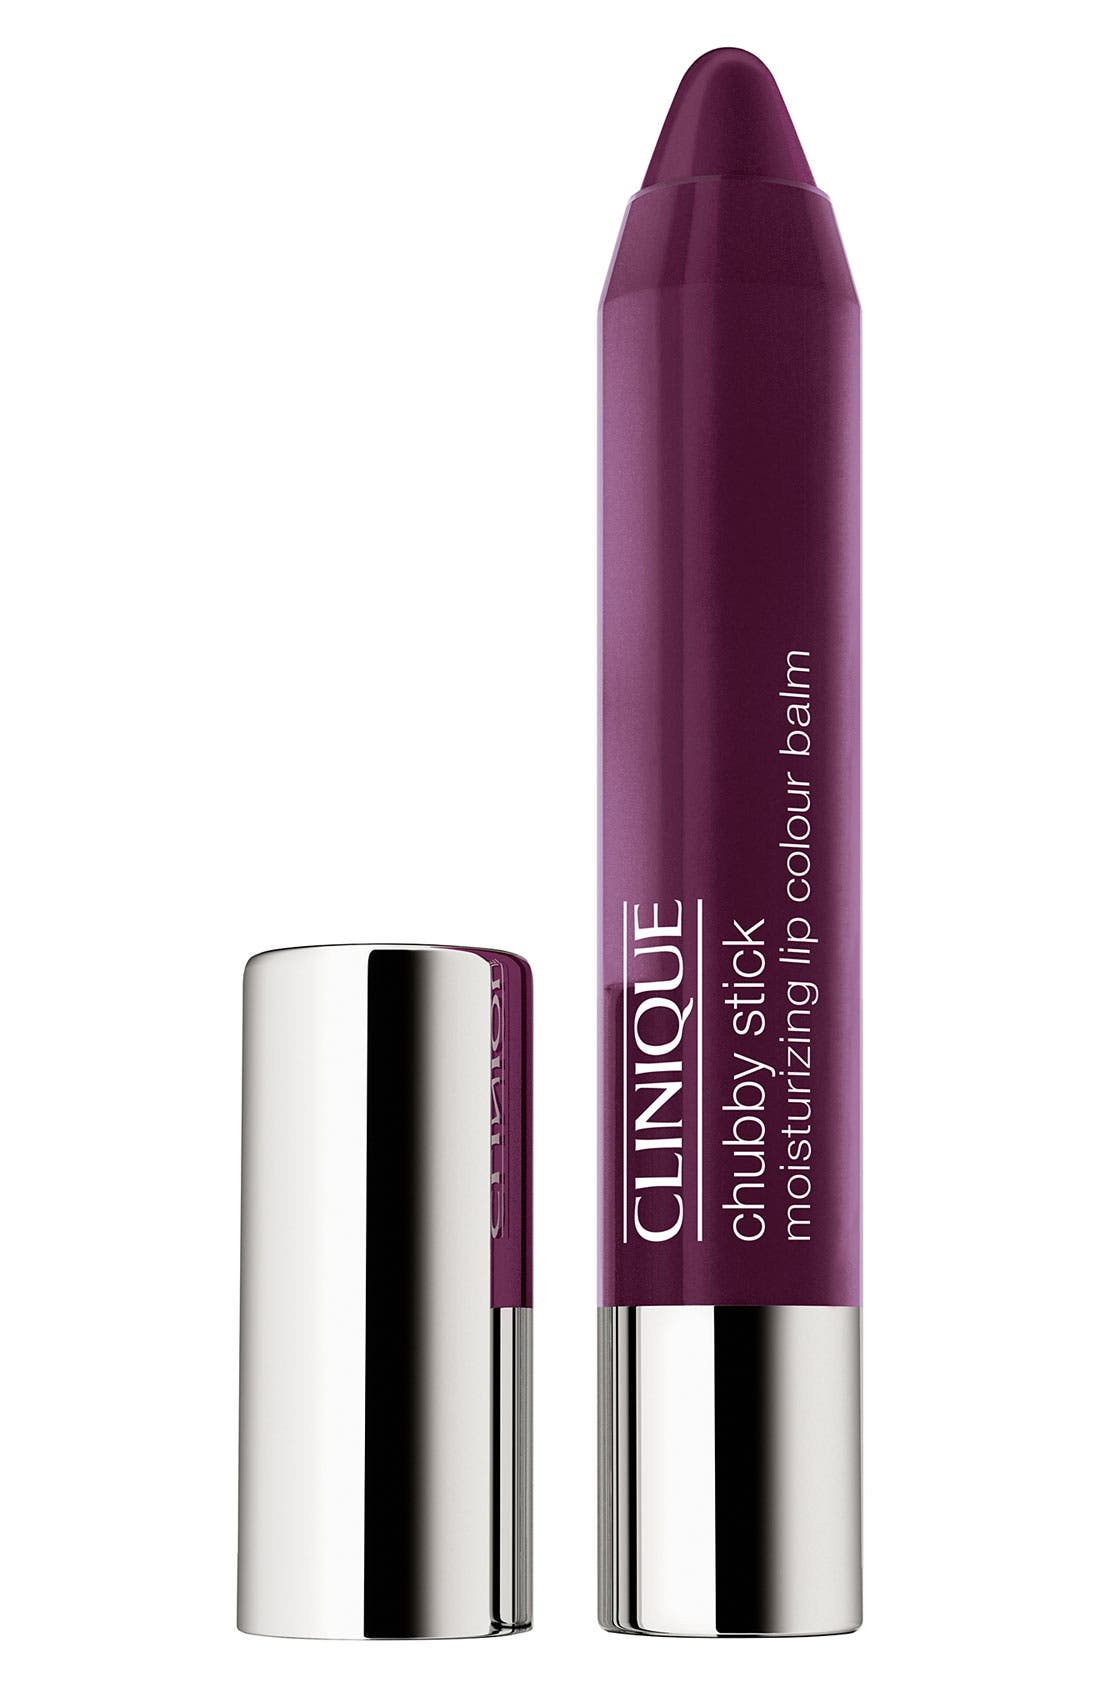 Clinique 'Chubby Stick' Moisturizing Lip Color Balm